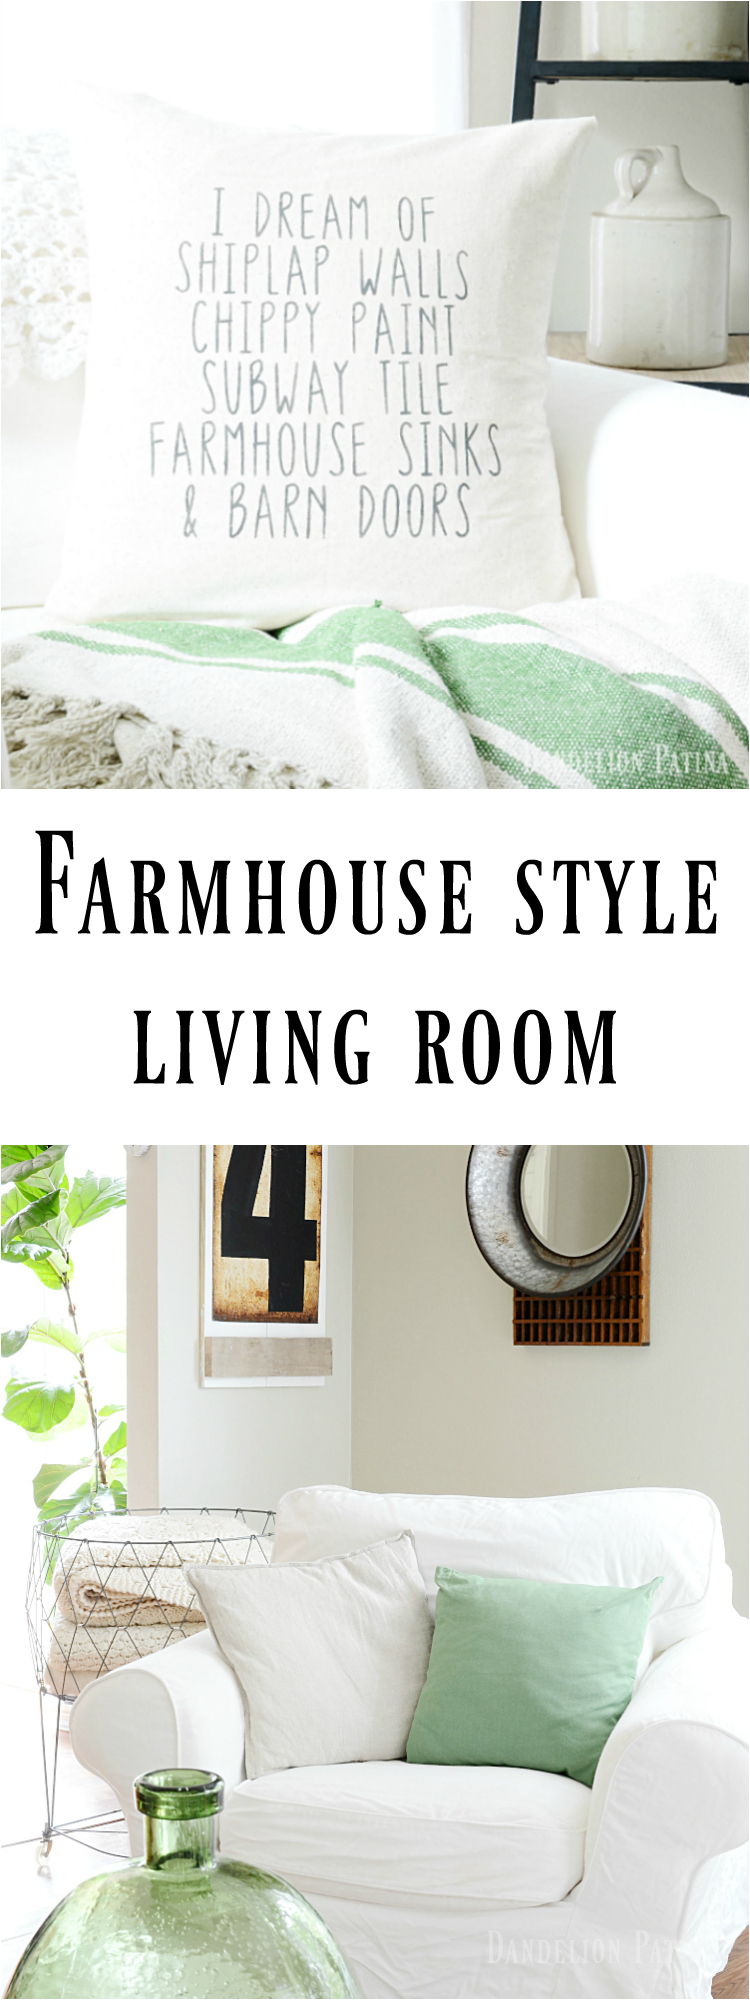 farmhouse style living room simple whites